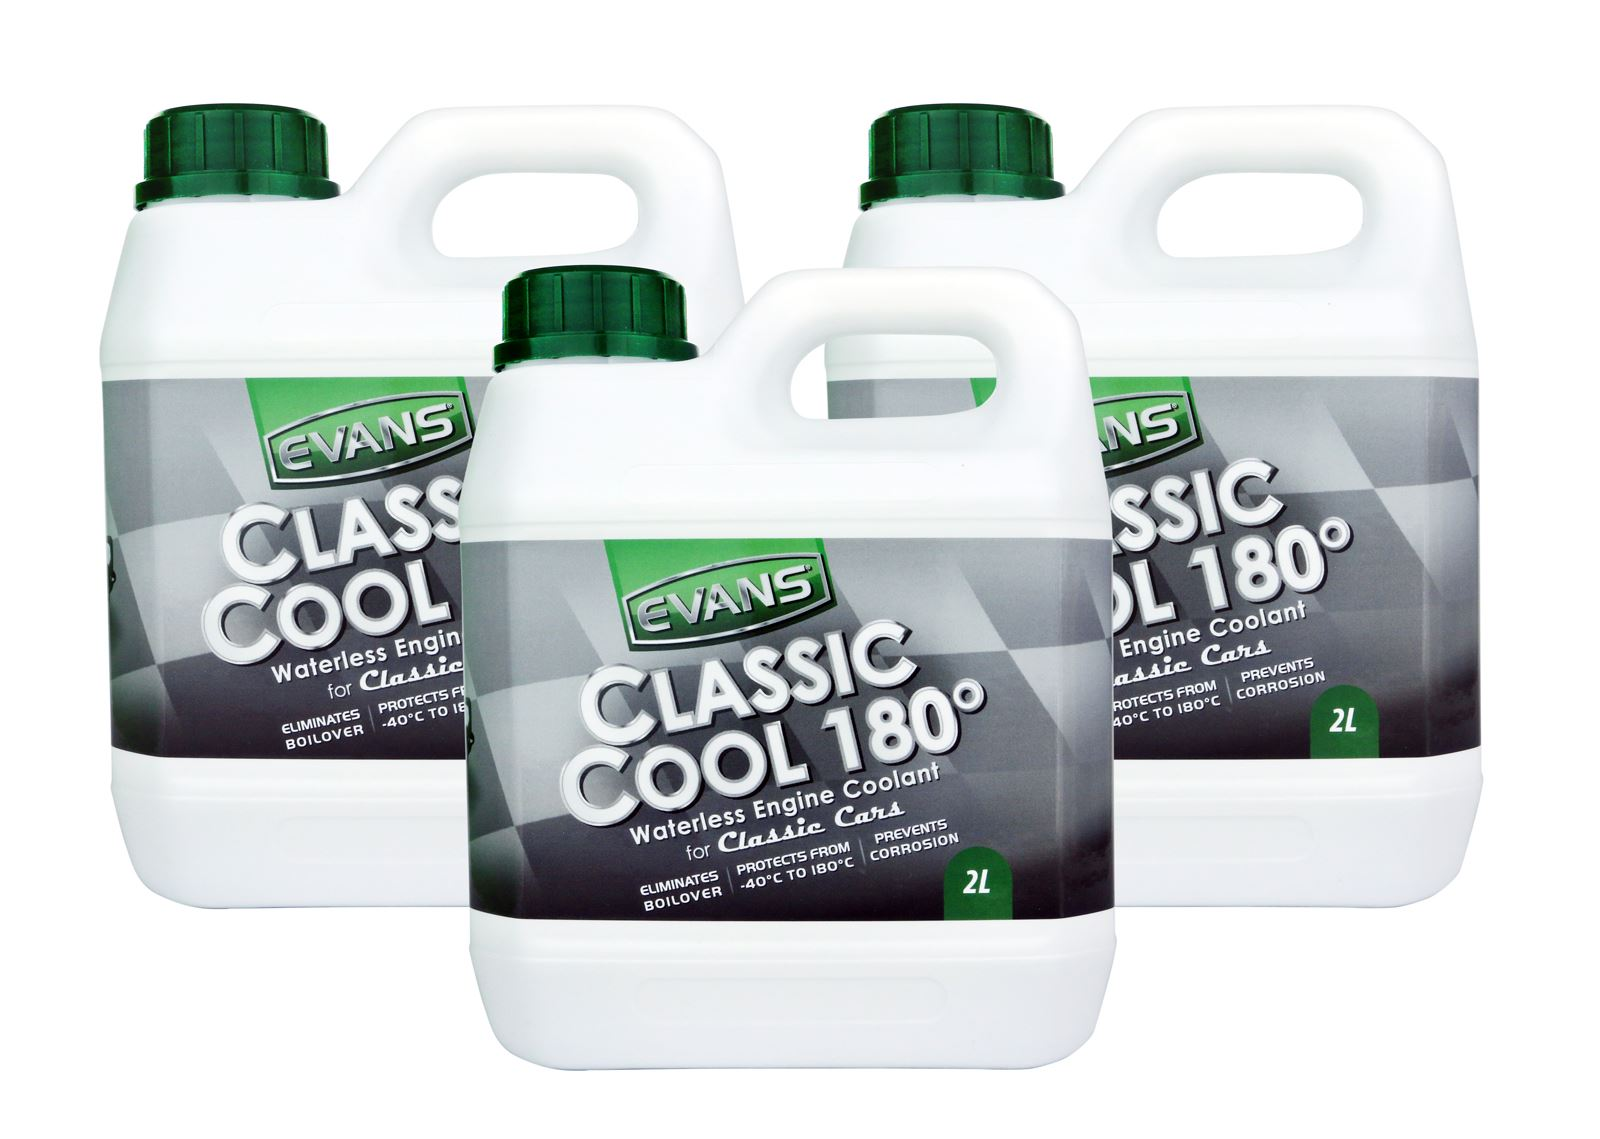 Waterless Coolant For Classic Cars